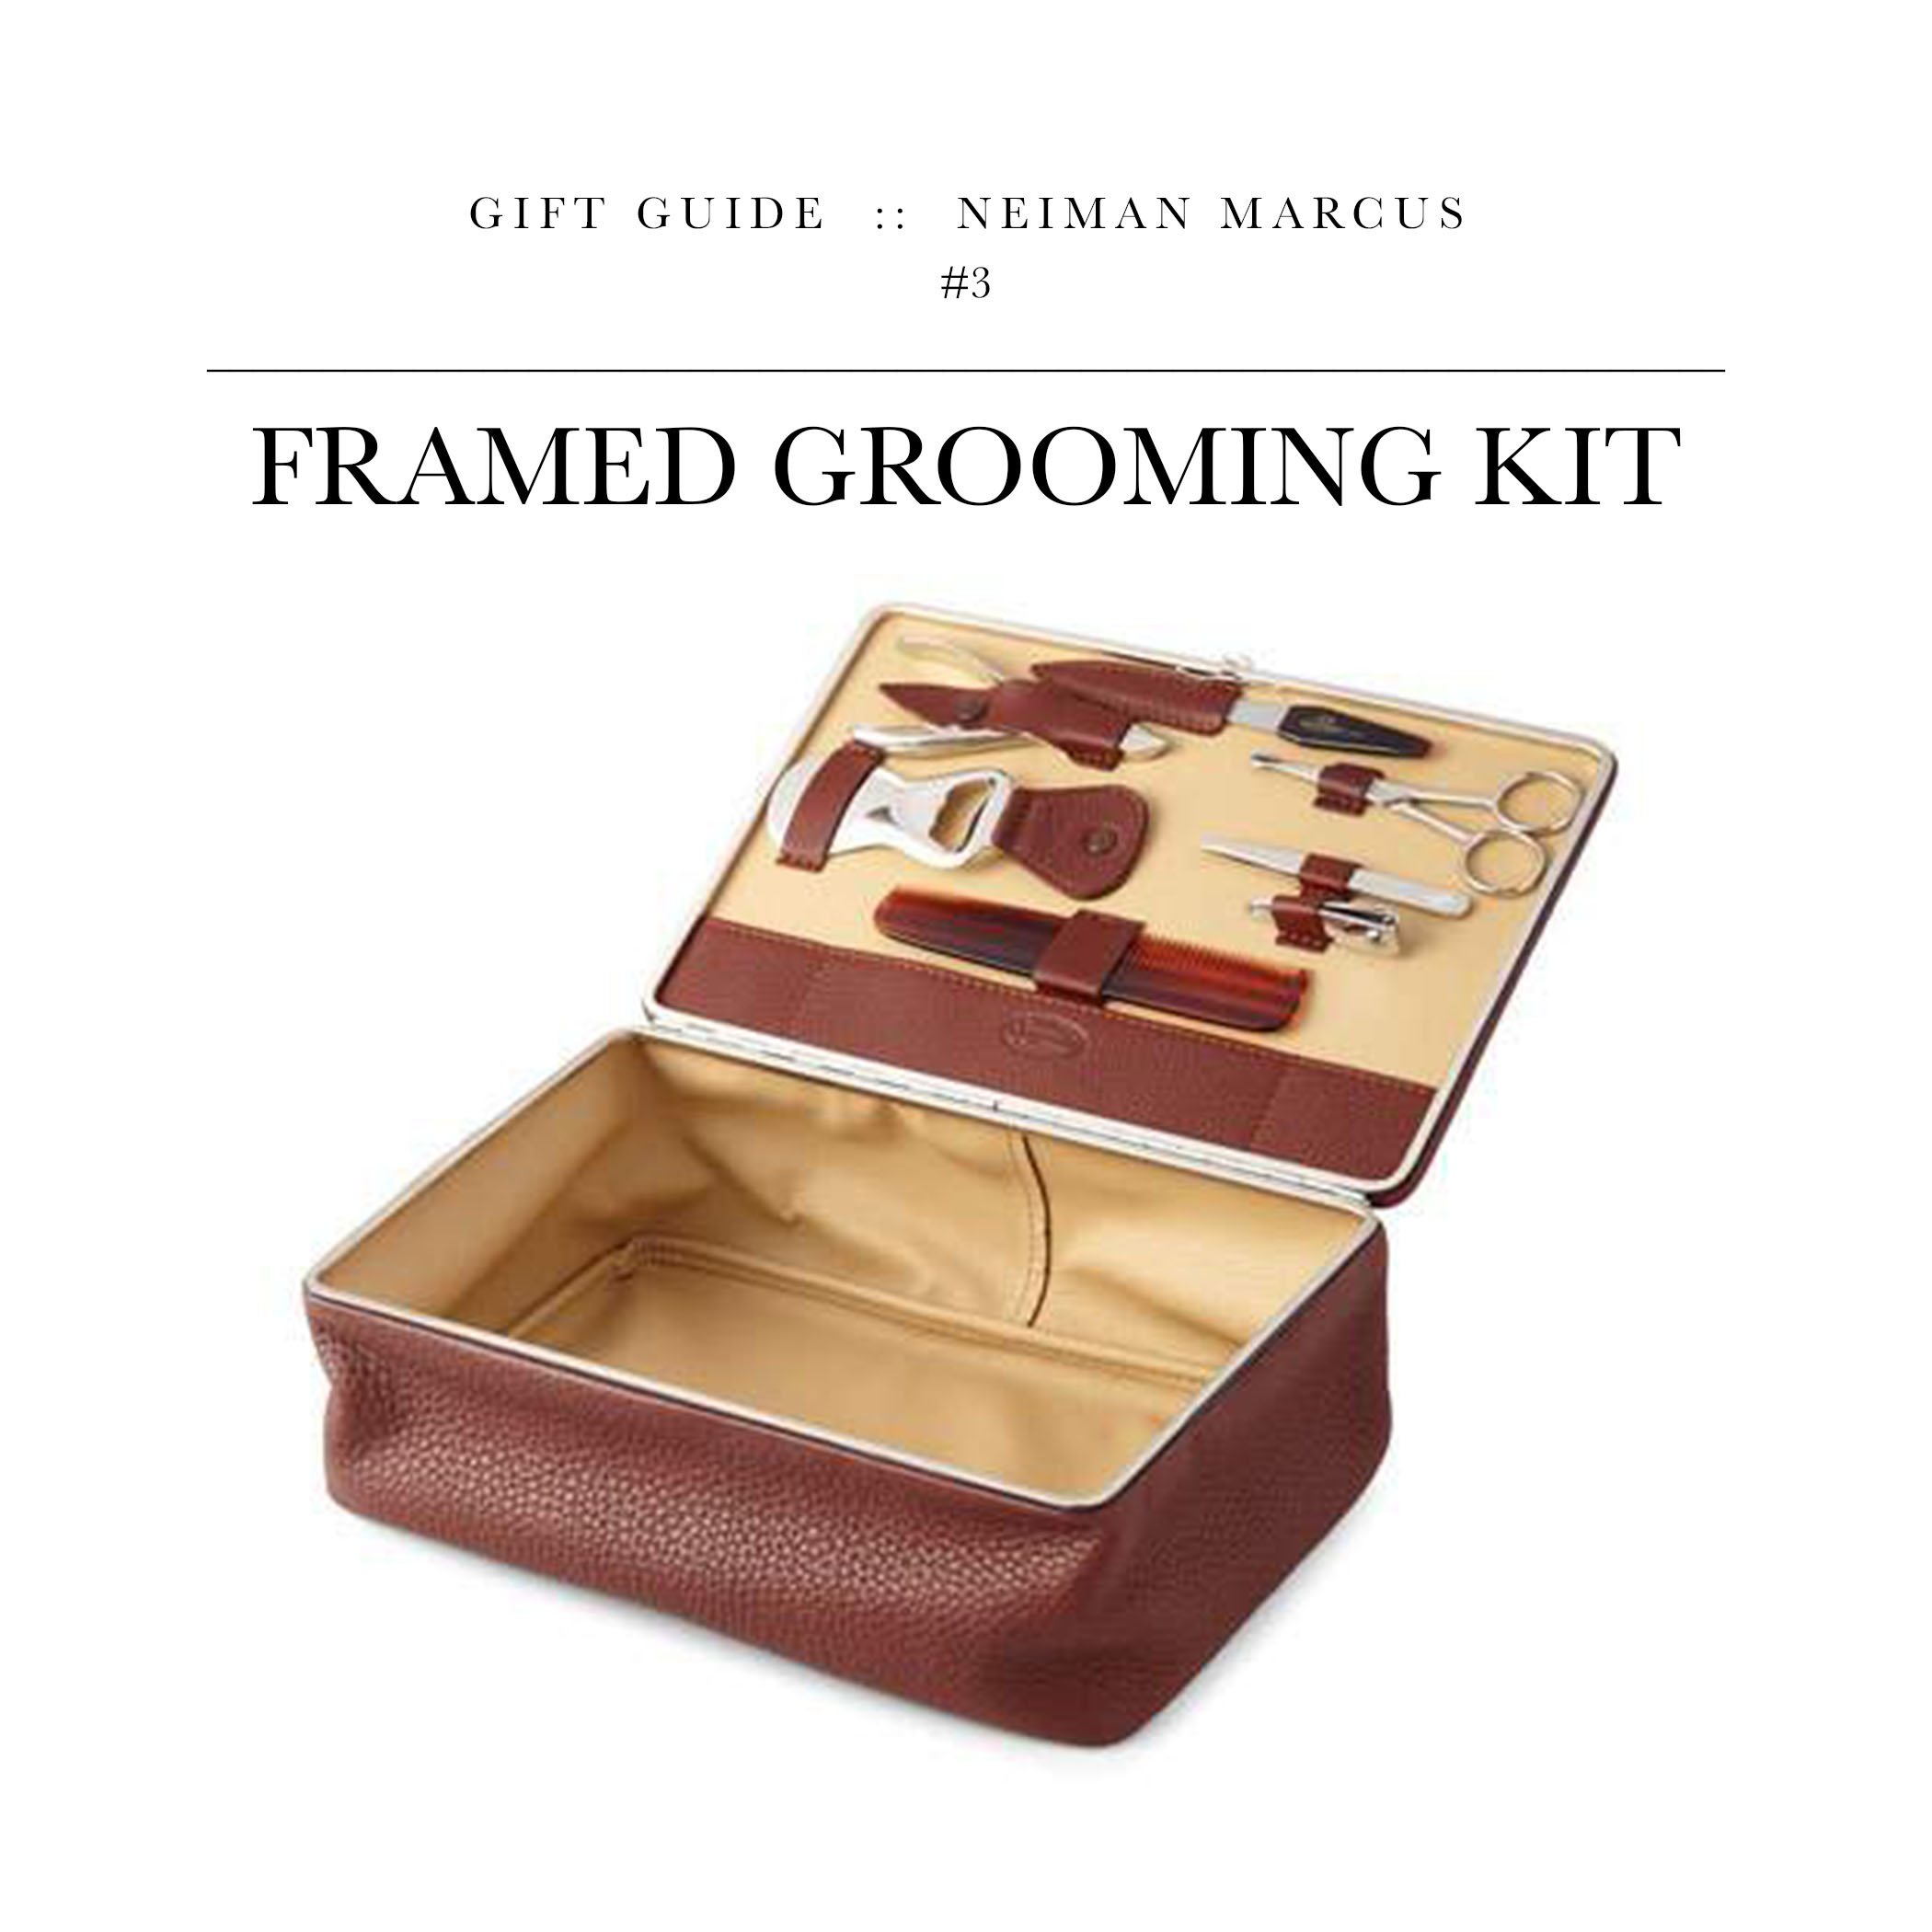 Framed Mens Grooming Kit  via Neiman Marcus // The one of the coolest grooming sets I've seen. The leather box it comes in could easily be used as a travel toiletry bag.